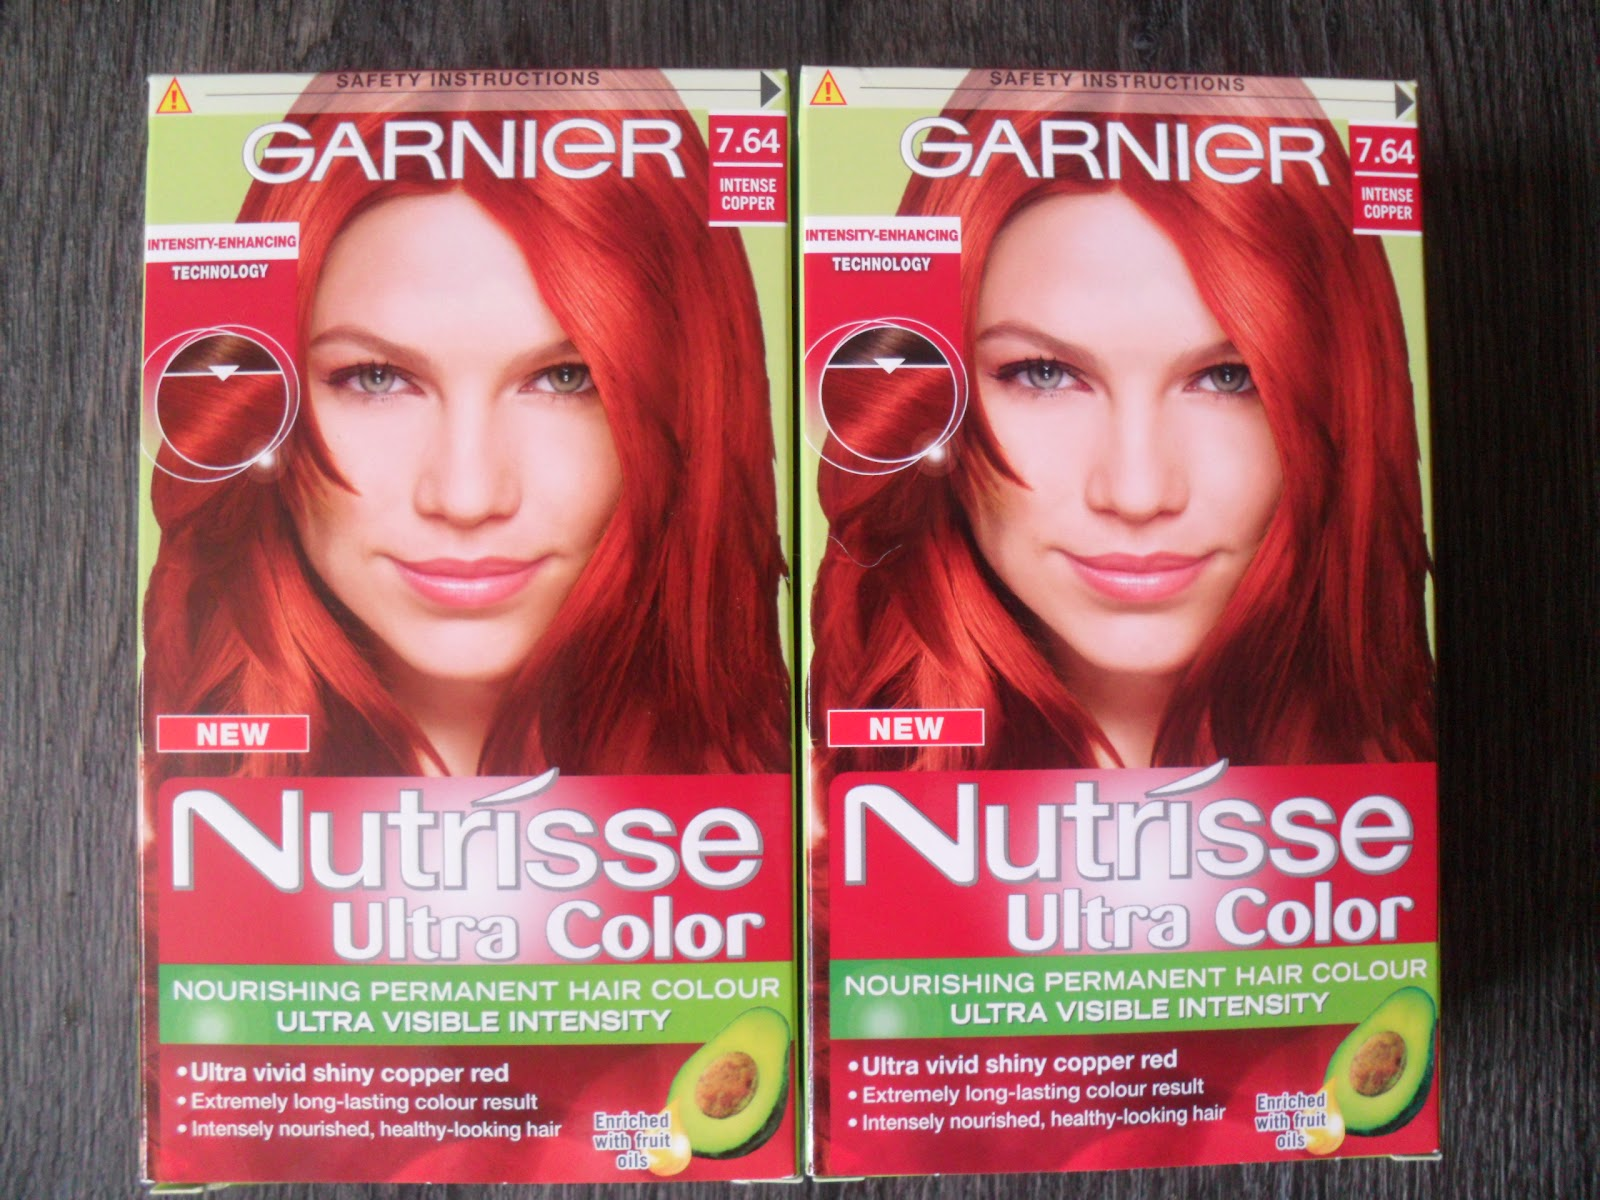 Garnier Nutrisse Ultra Color Light Intense Auburn Hairstyle